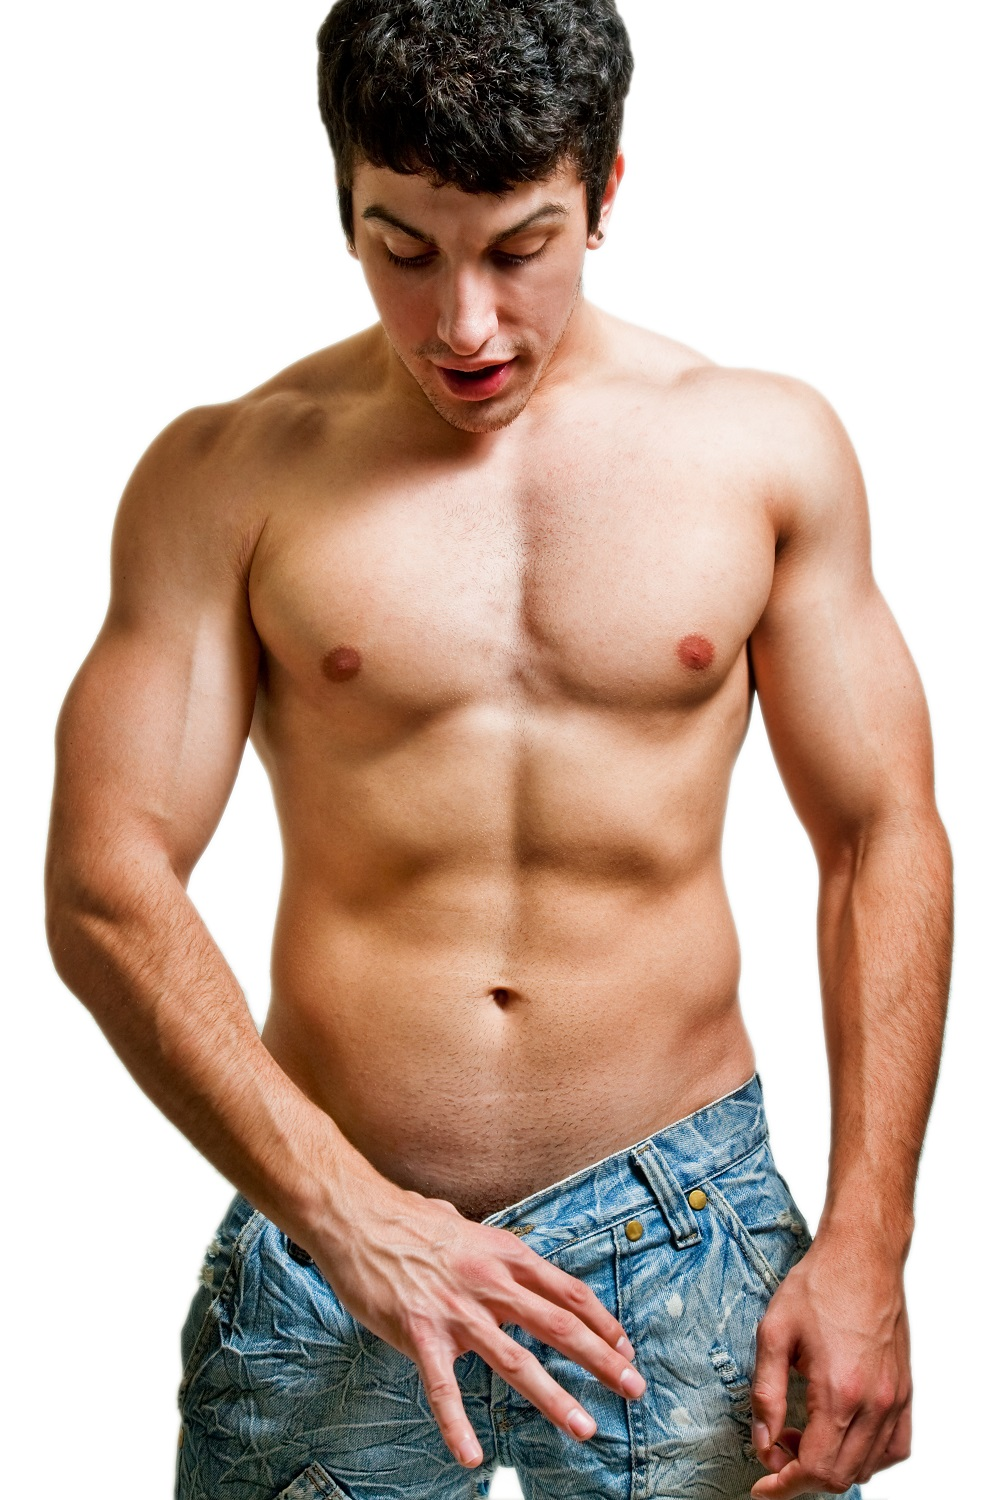 what causes low testosterone in a man